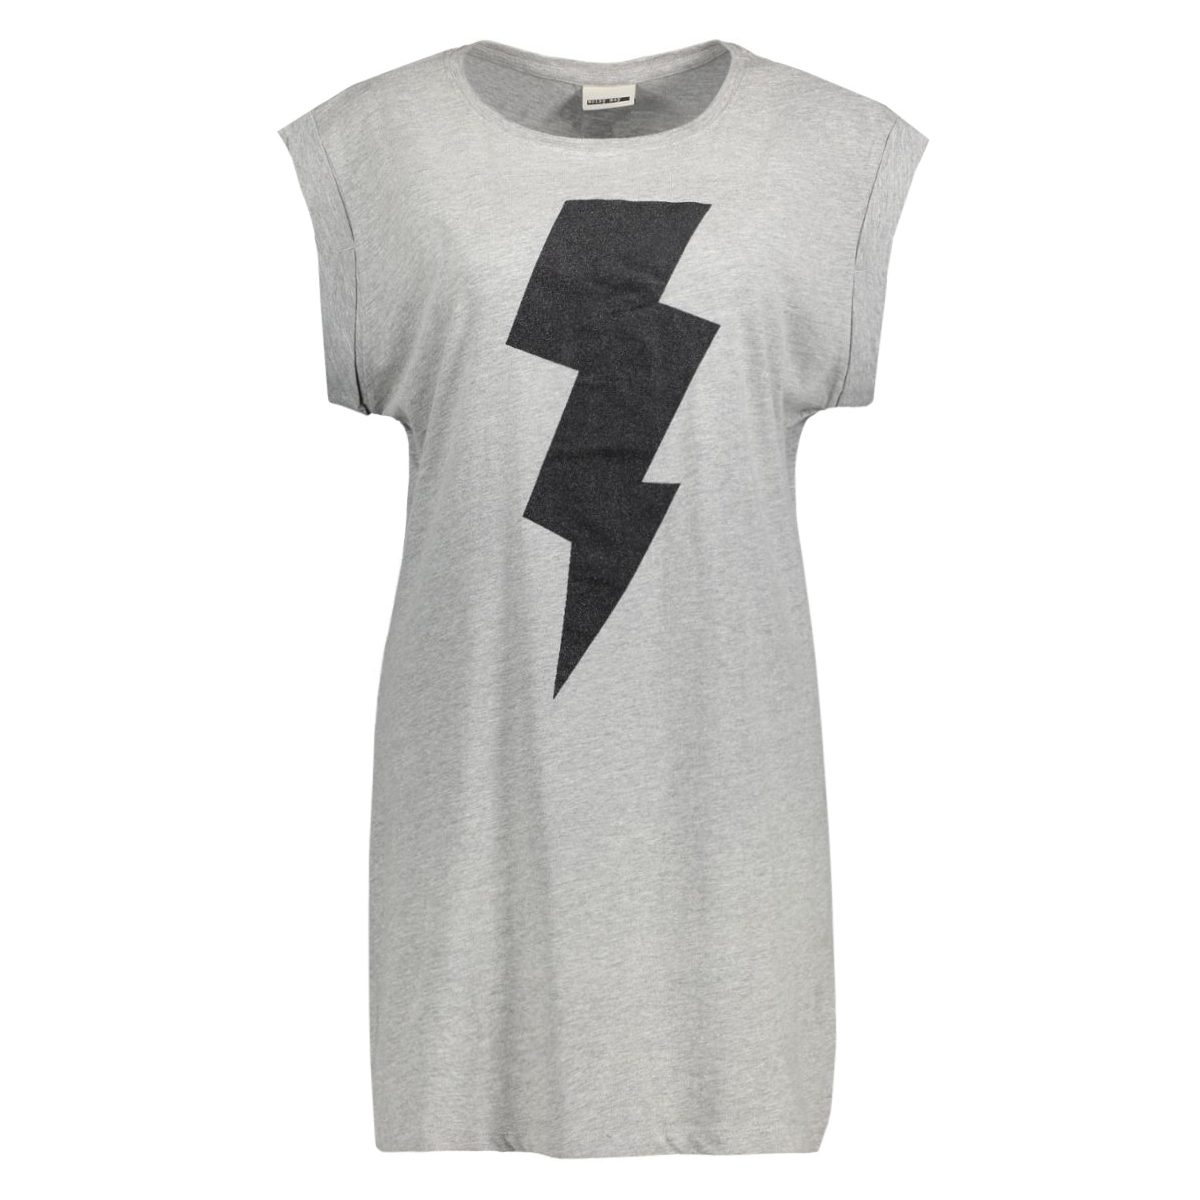 nmmerry s/s long top 10164293 noisy may t-shirt light grey